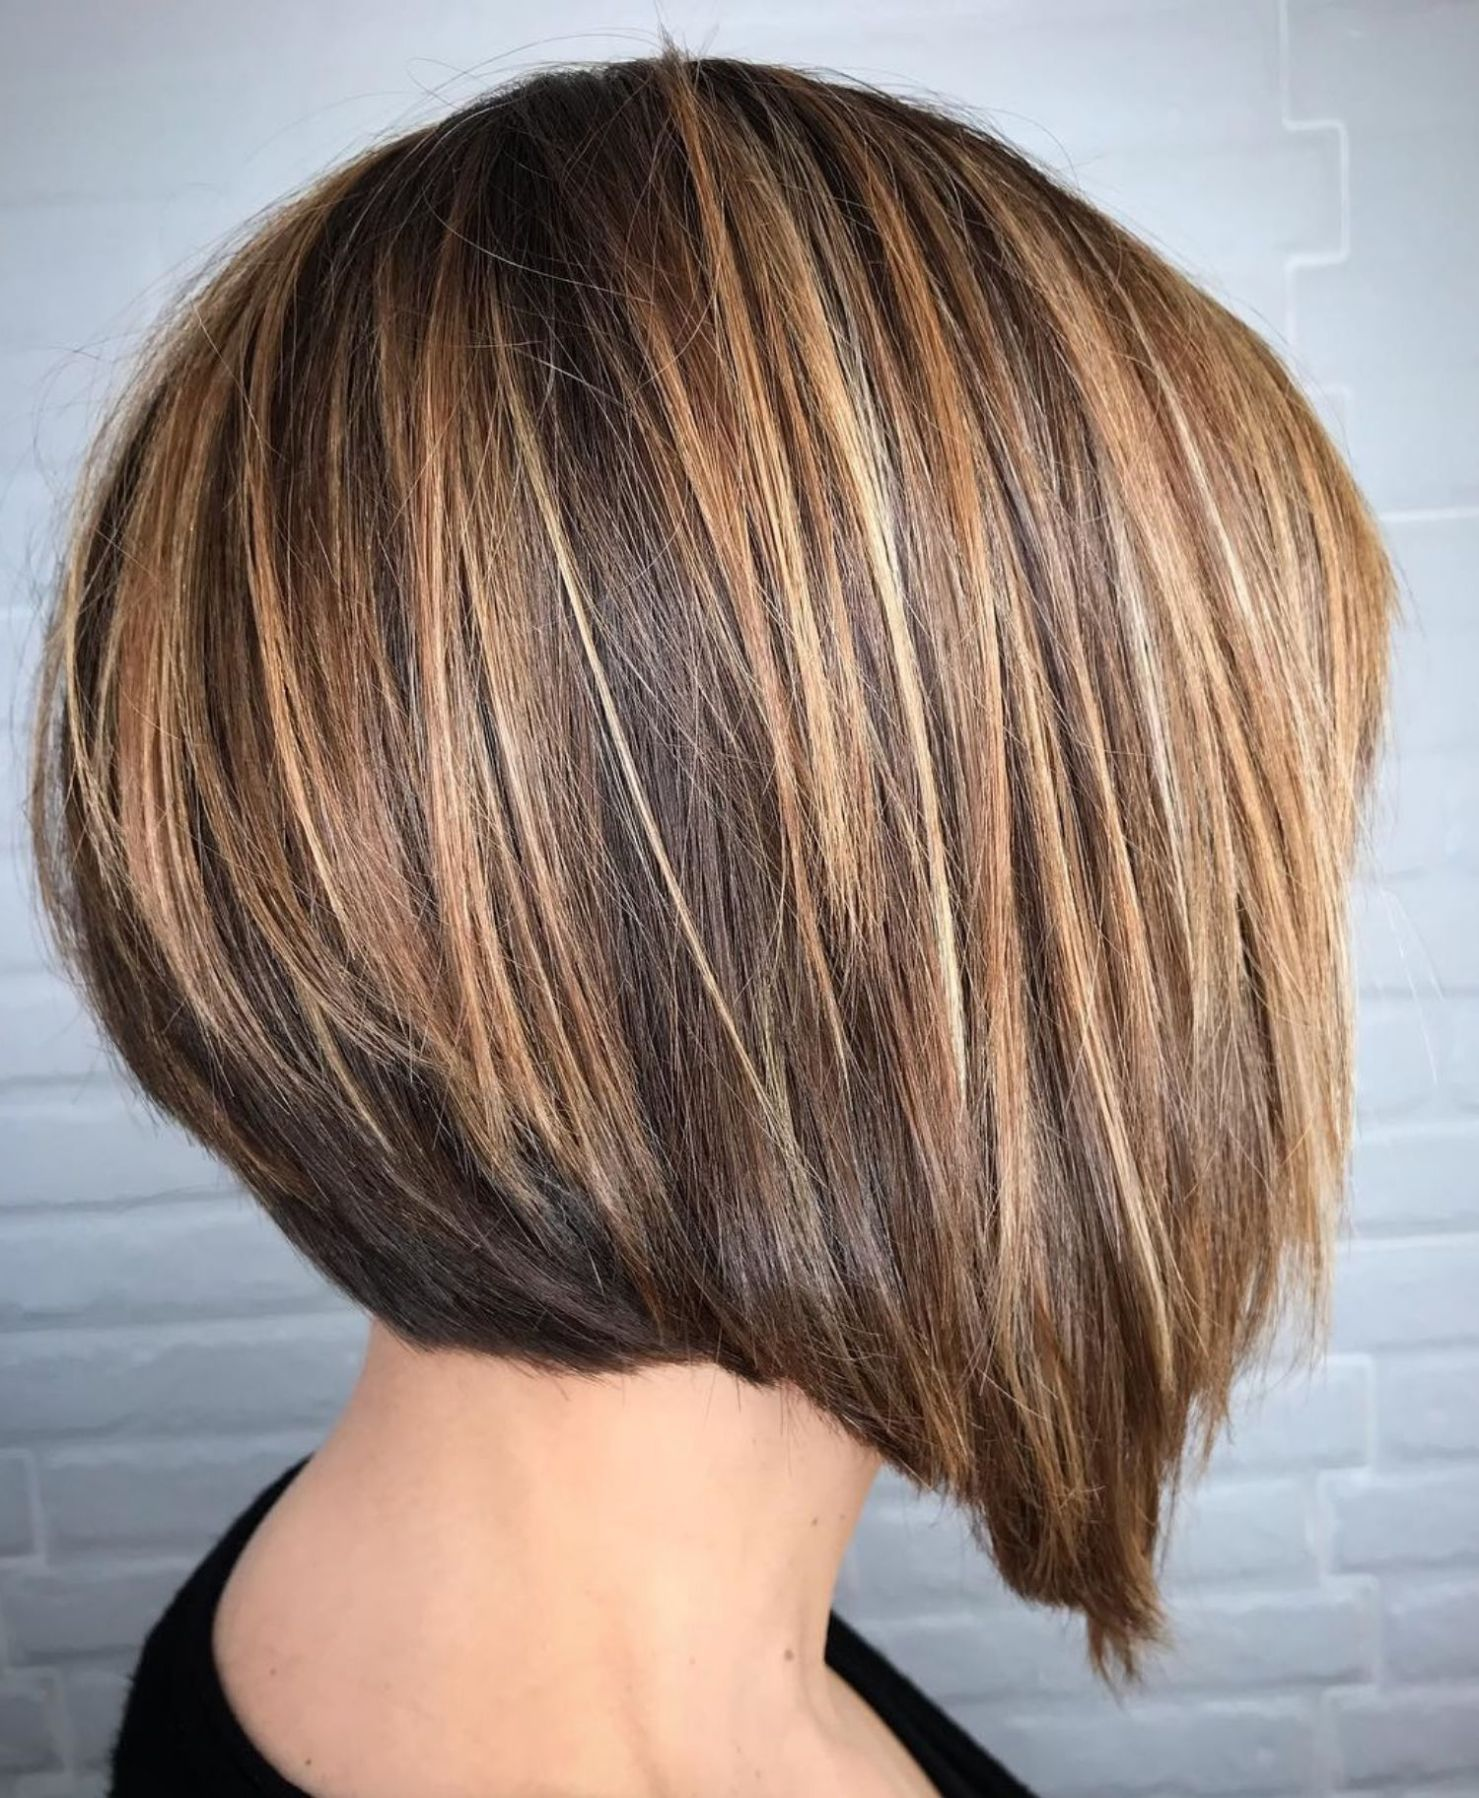 5 Hairstyle Ideas Hairstyle For Bride Ideas Hairstyle Ideas Marriage Short Hairstyl In 2020 Thick Hair Styles Short Hairstyles For Thick Hair Medium Bob Hairstyles